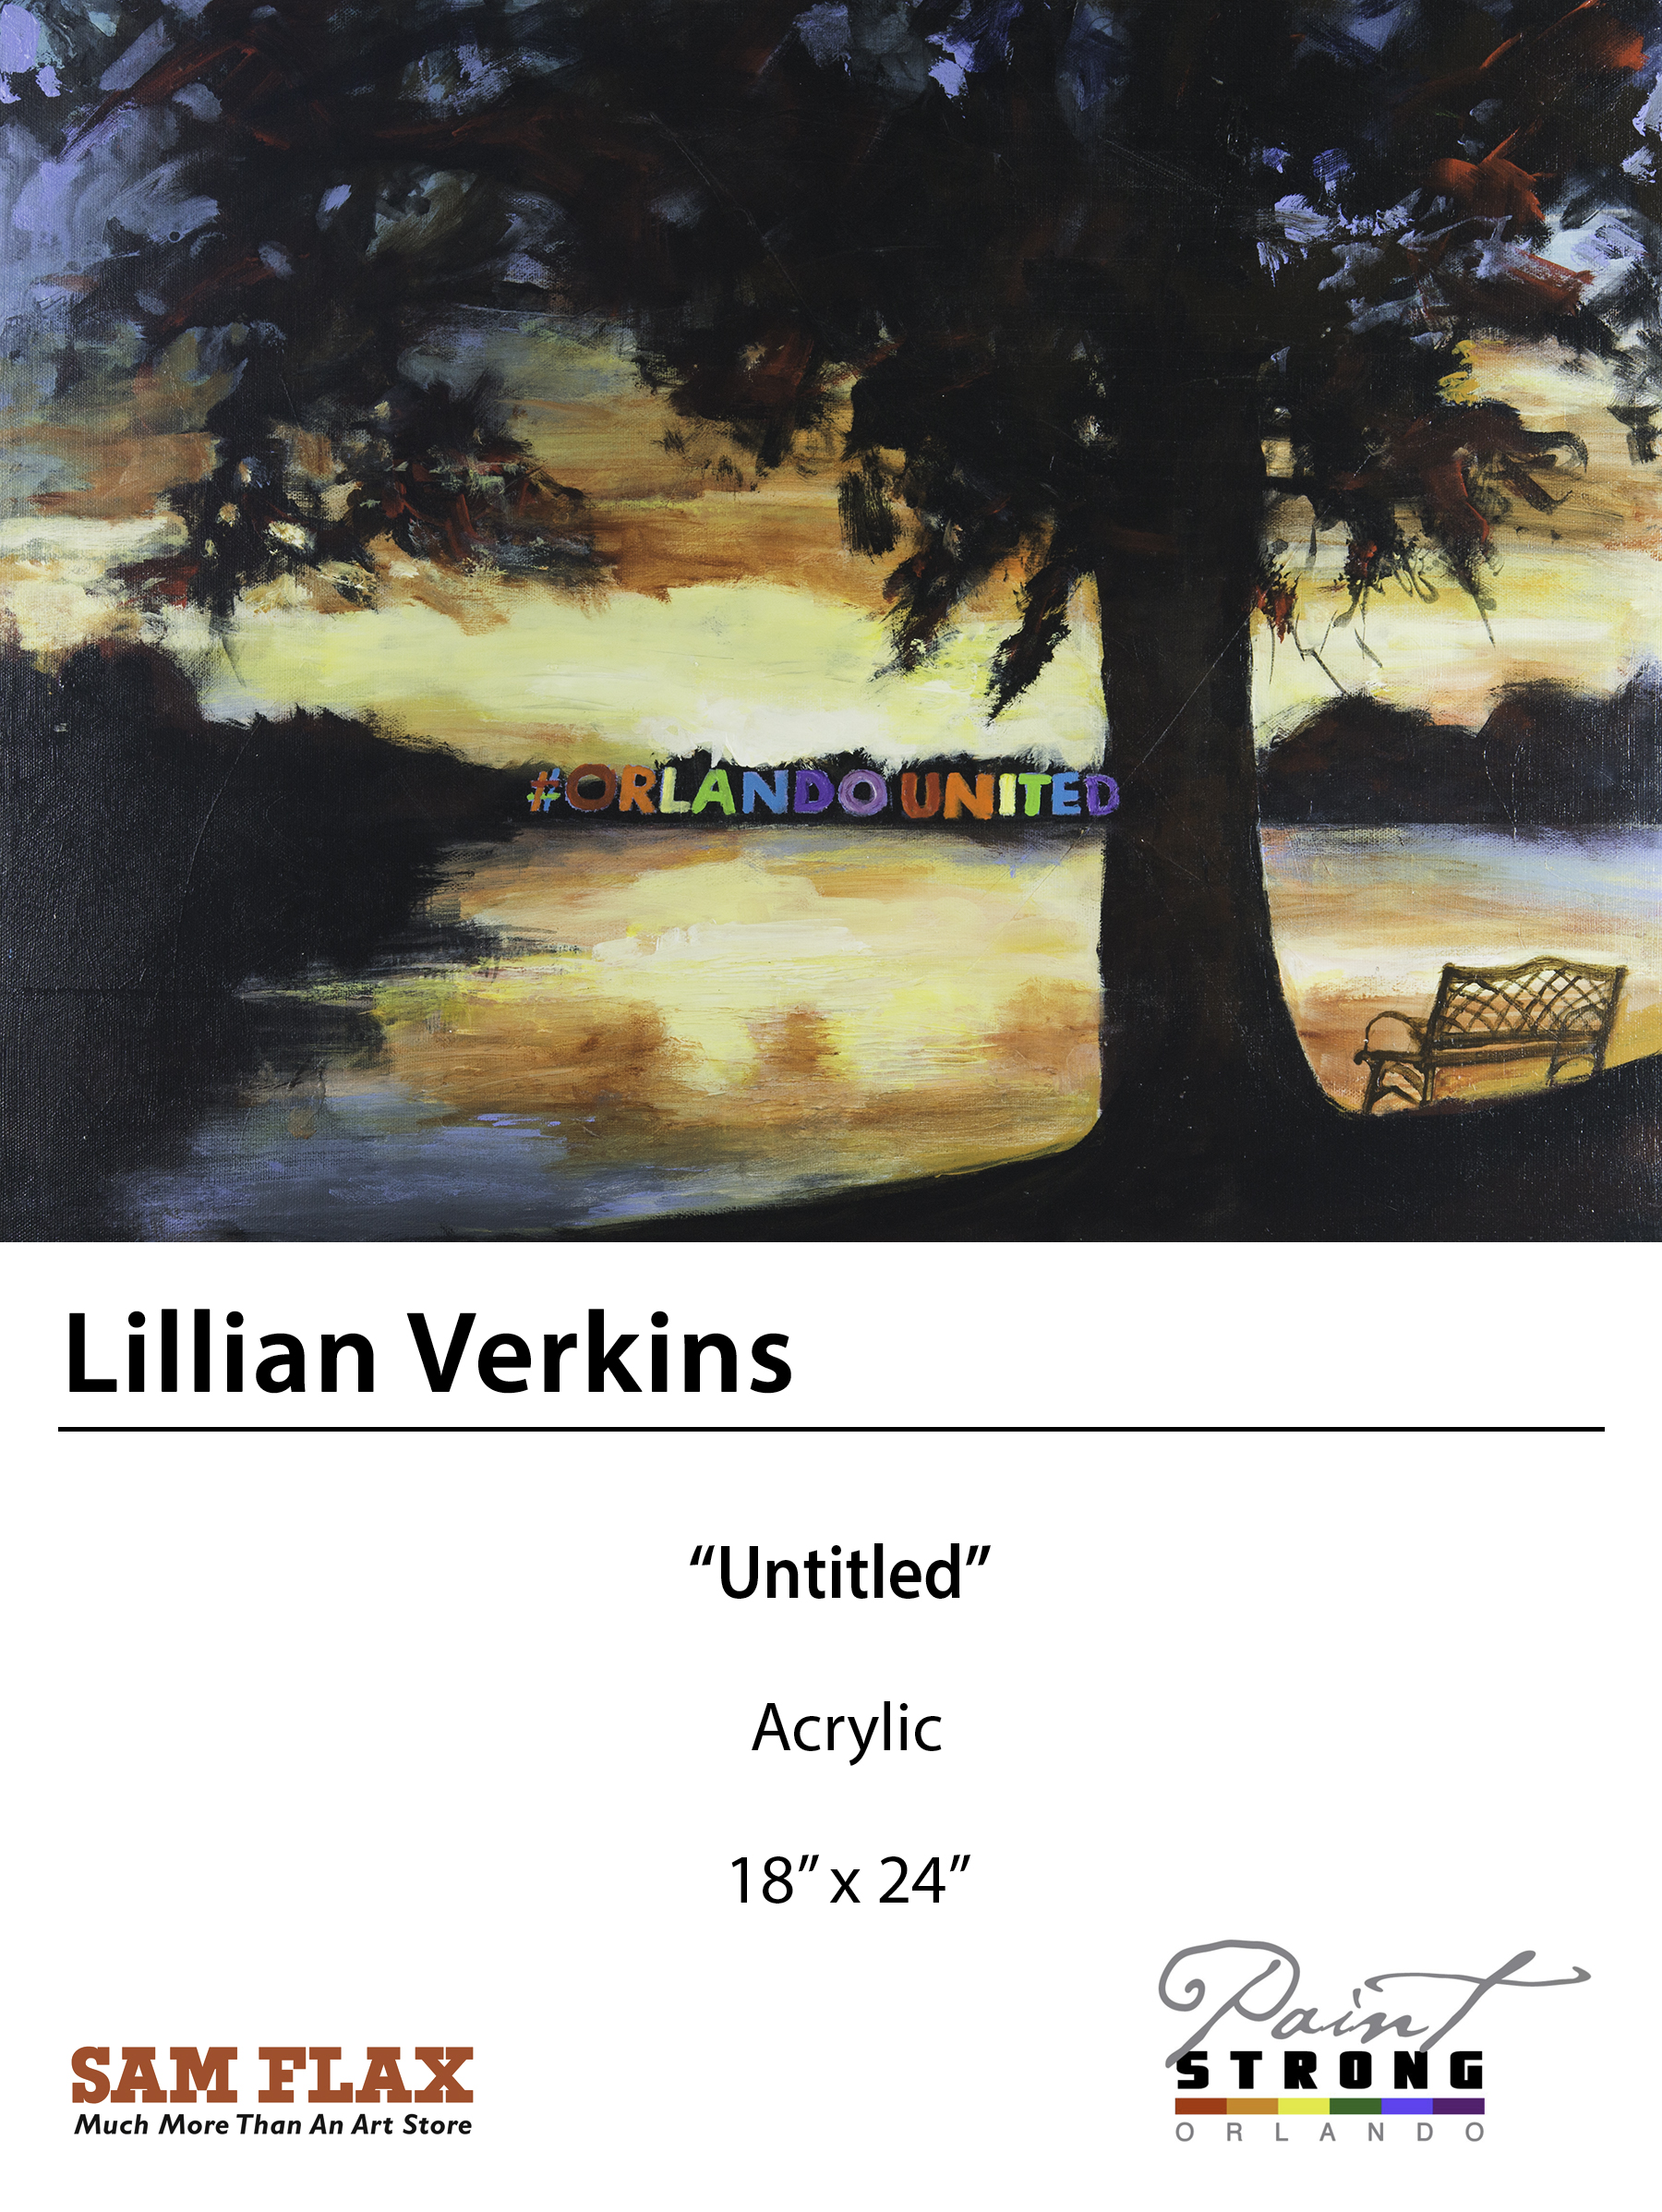 Lillian Verkins